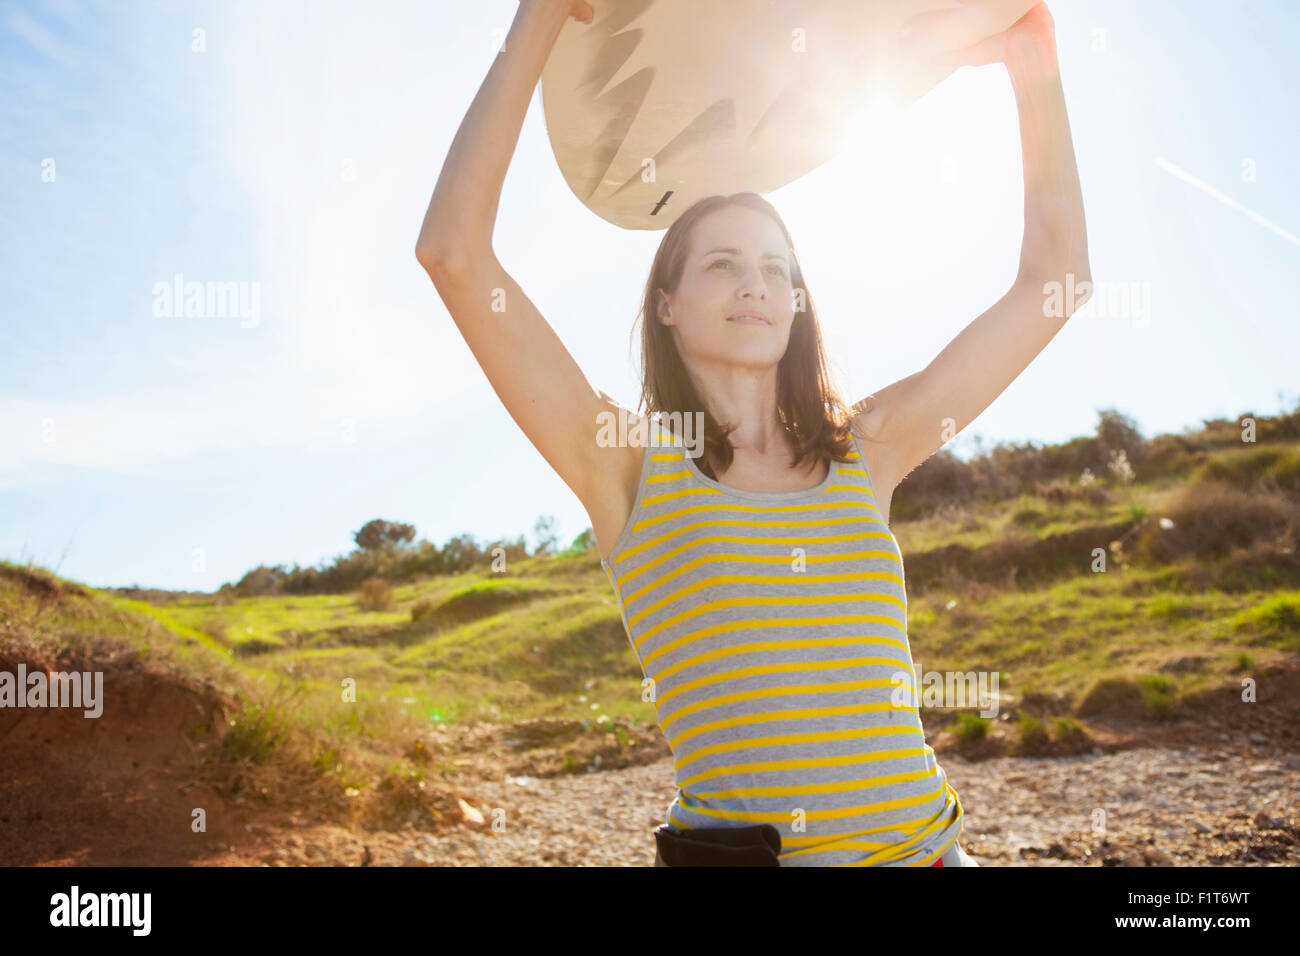 Woman carrying surfboard - Stock Image